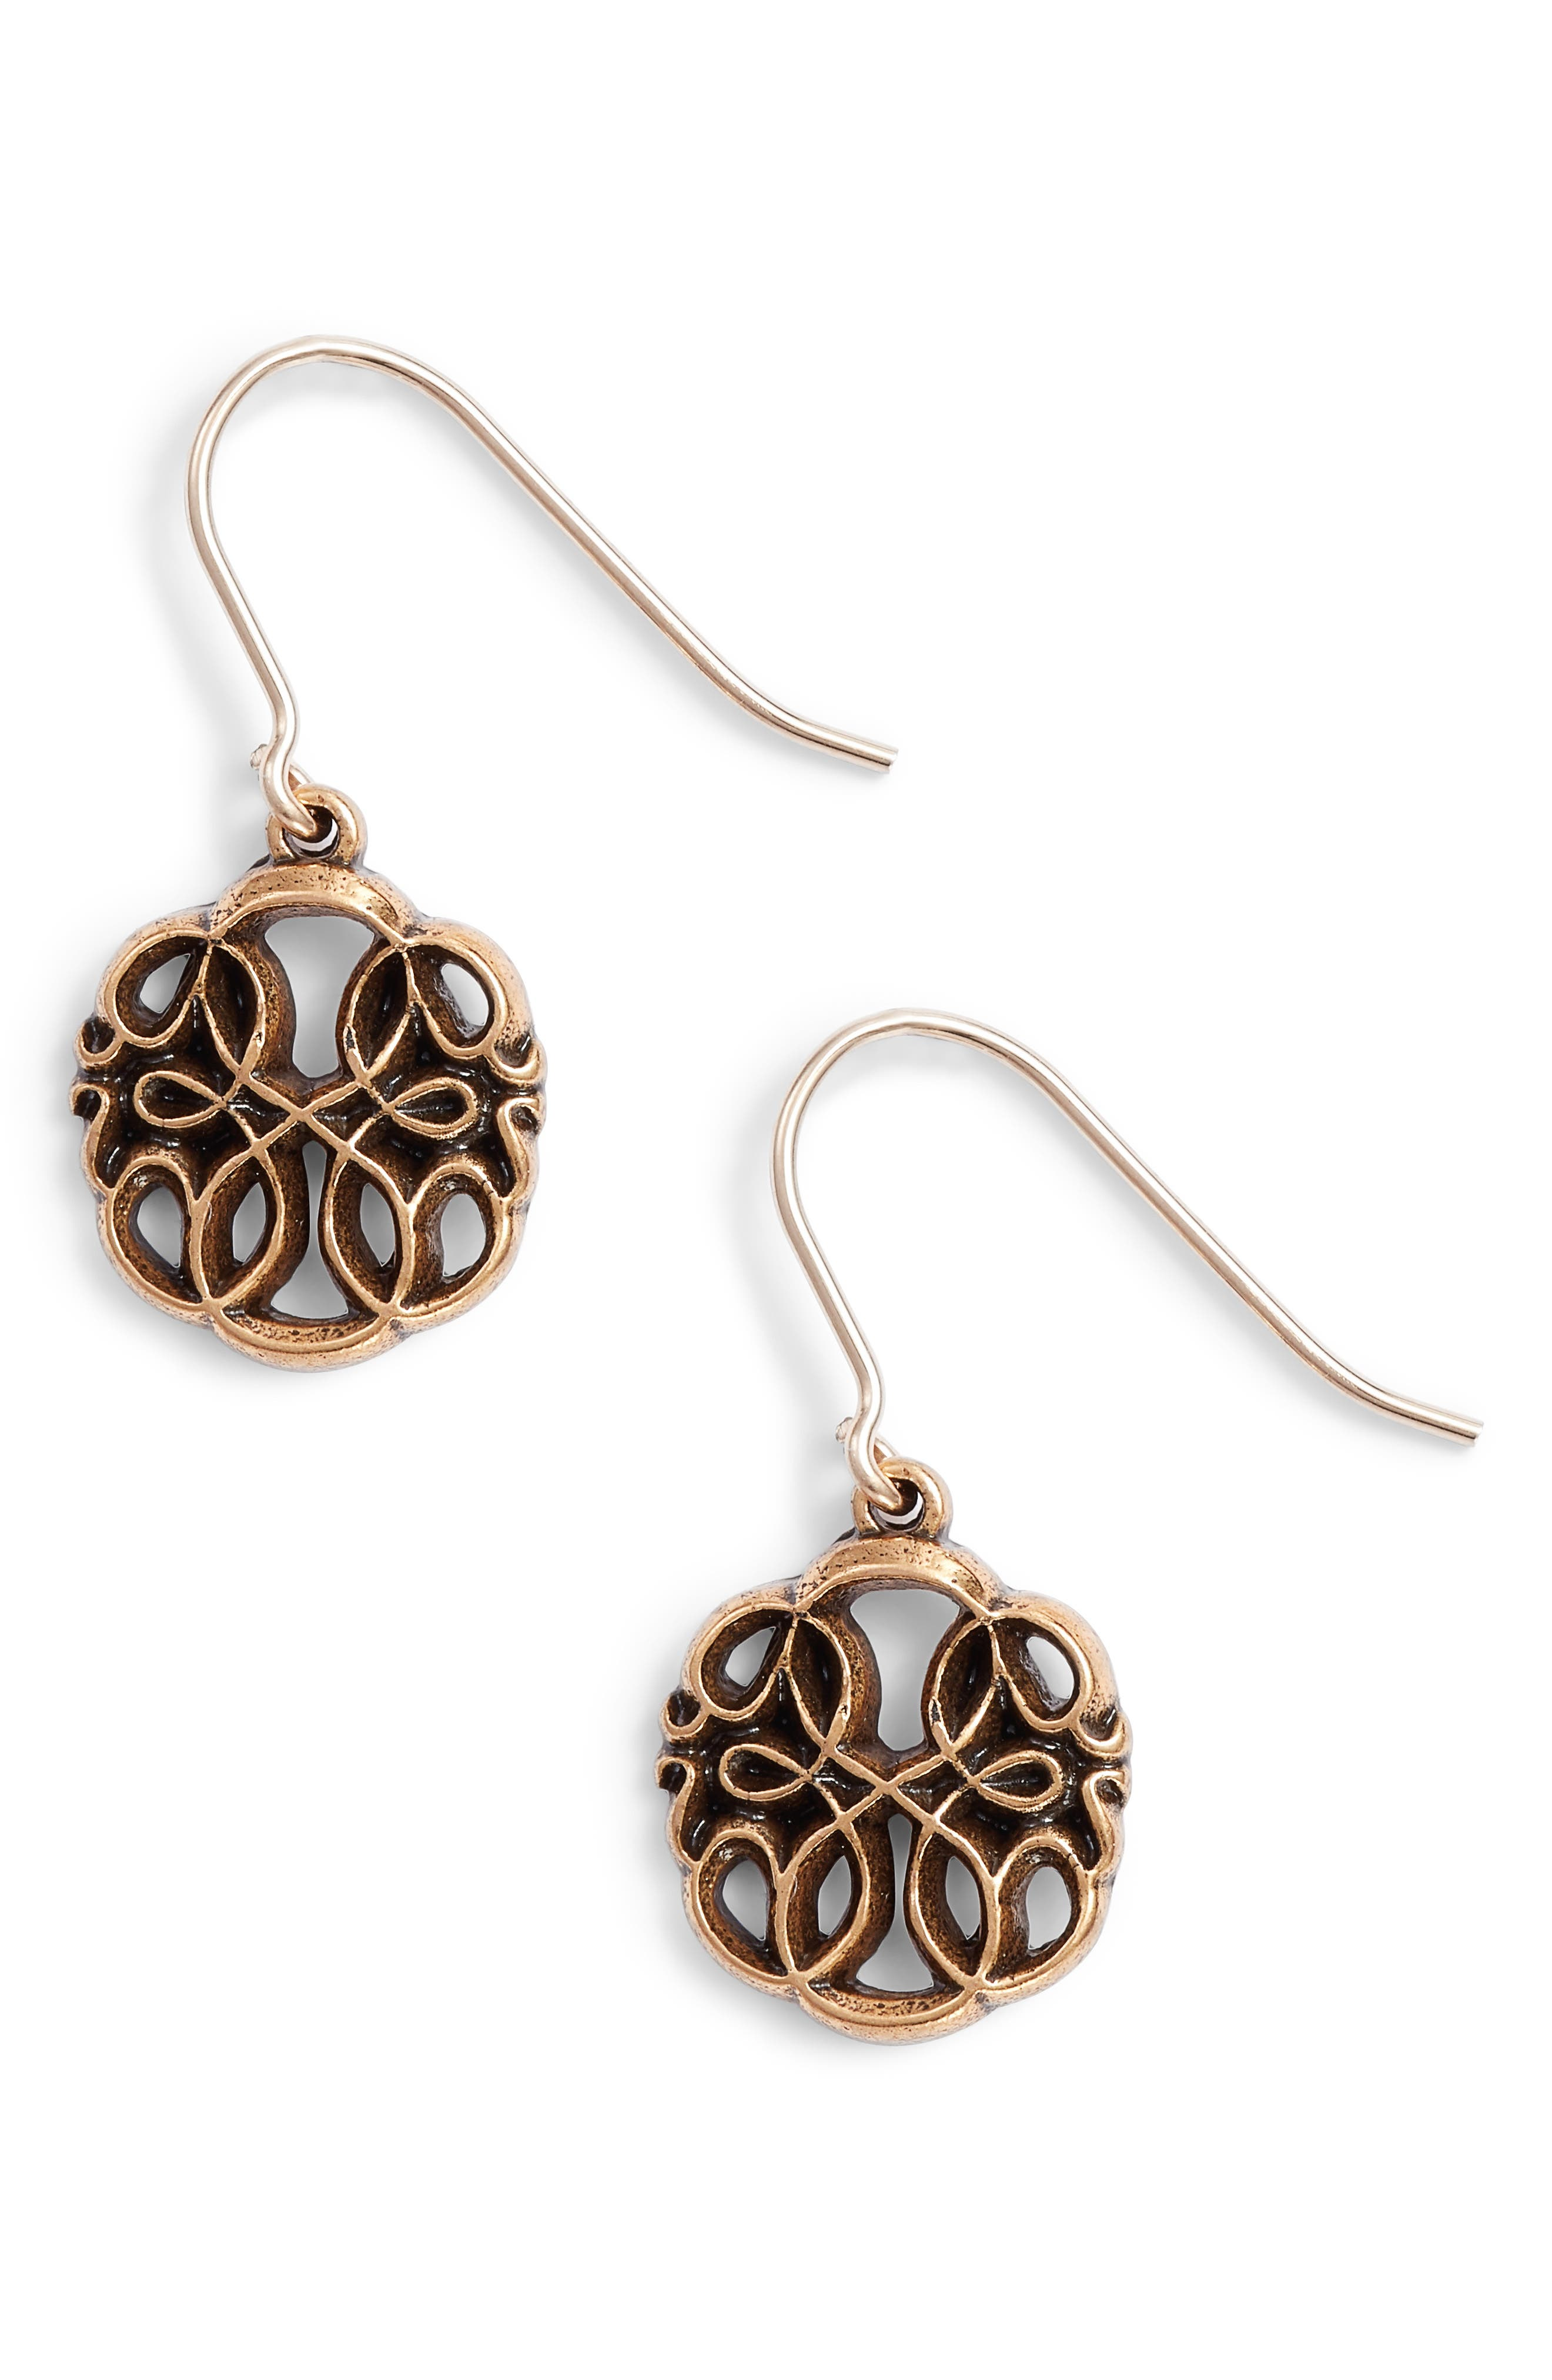 Path of Life Drop Earrings,                         Main,                         color, Gold